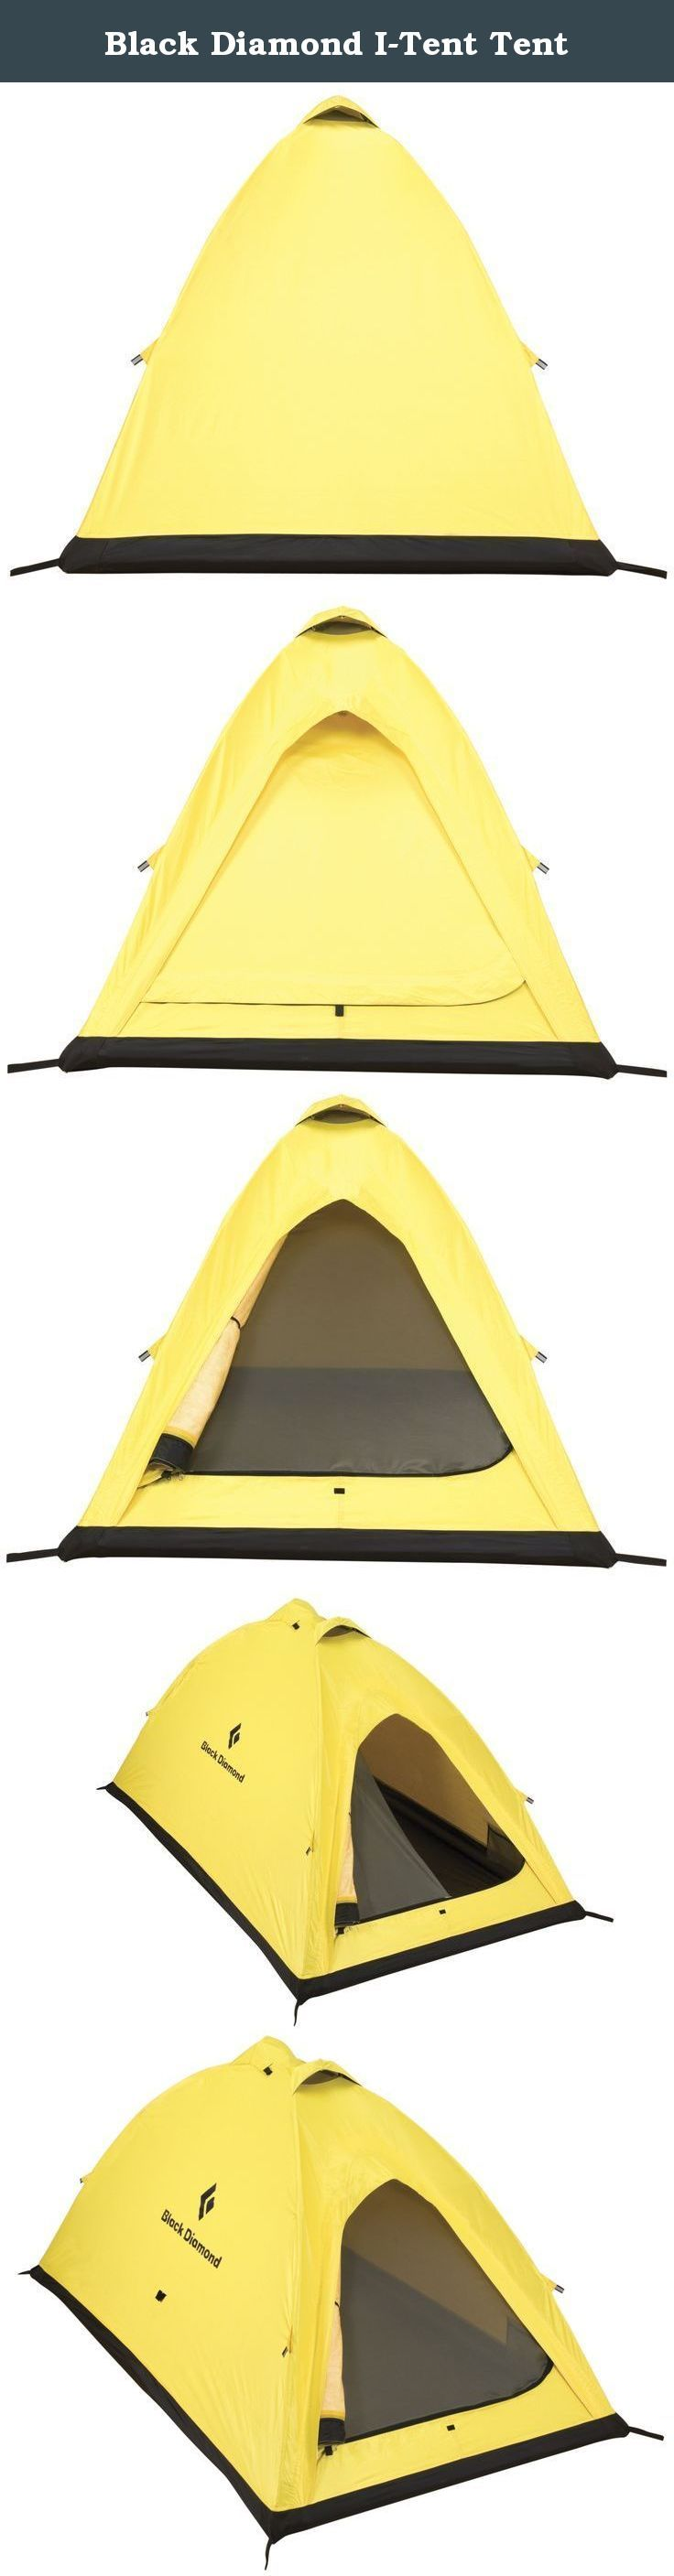 Black Diamond I-Tent Tent. The I-Tent is the classic compact mountaineering design for expedition use: Ultra-strong, lightweight 2-person design with efficient footprint. Single door entry and optional vestibule for gear storage. Has 2 internal aluminum poles for easy setup and 2 zippered vents at the peak, a hooded vent over the door and one at the bottom. Made with ToddTex single-wall fabric – 100% seam taped. Optional ground cloth available, sold separately.